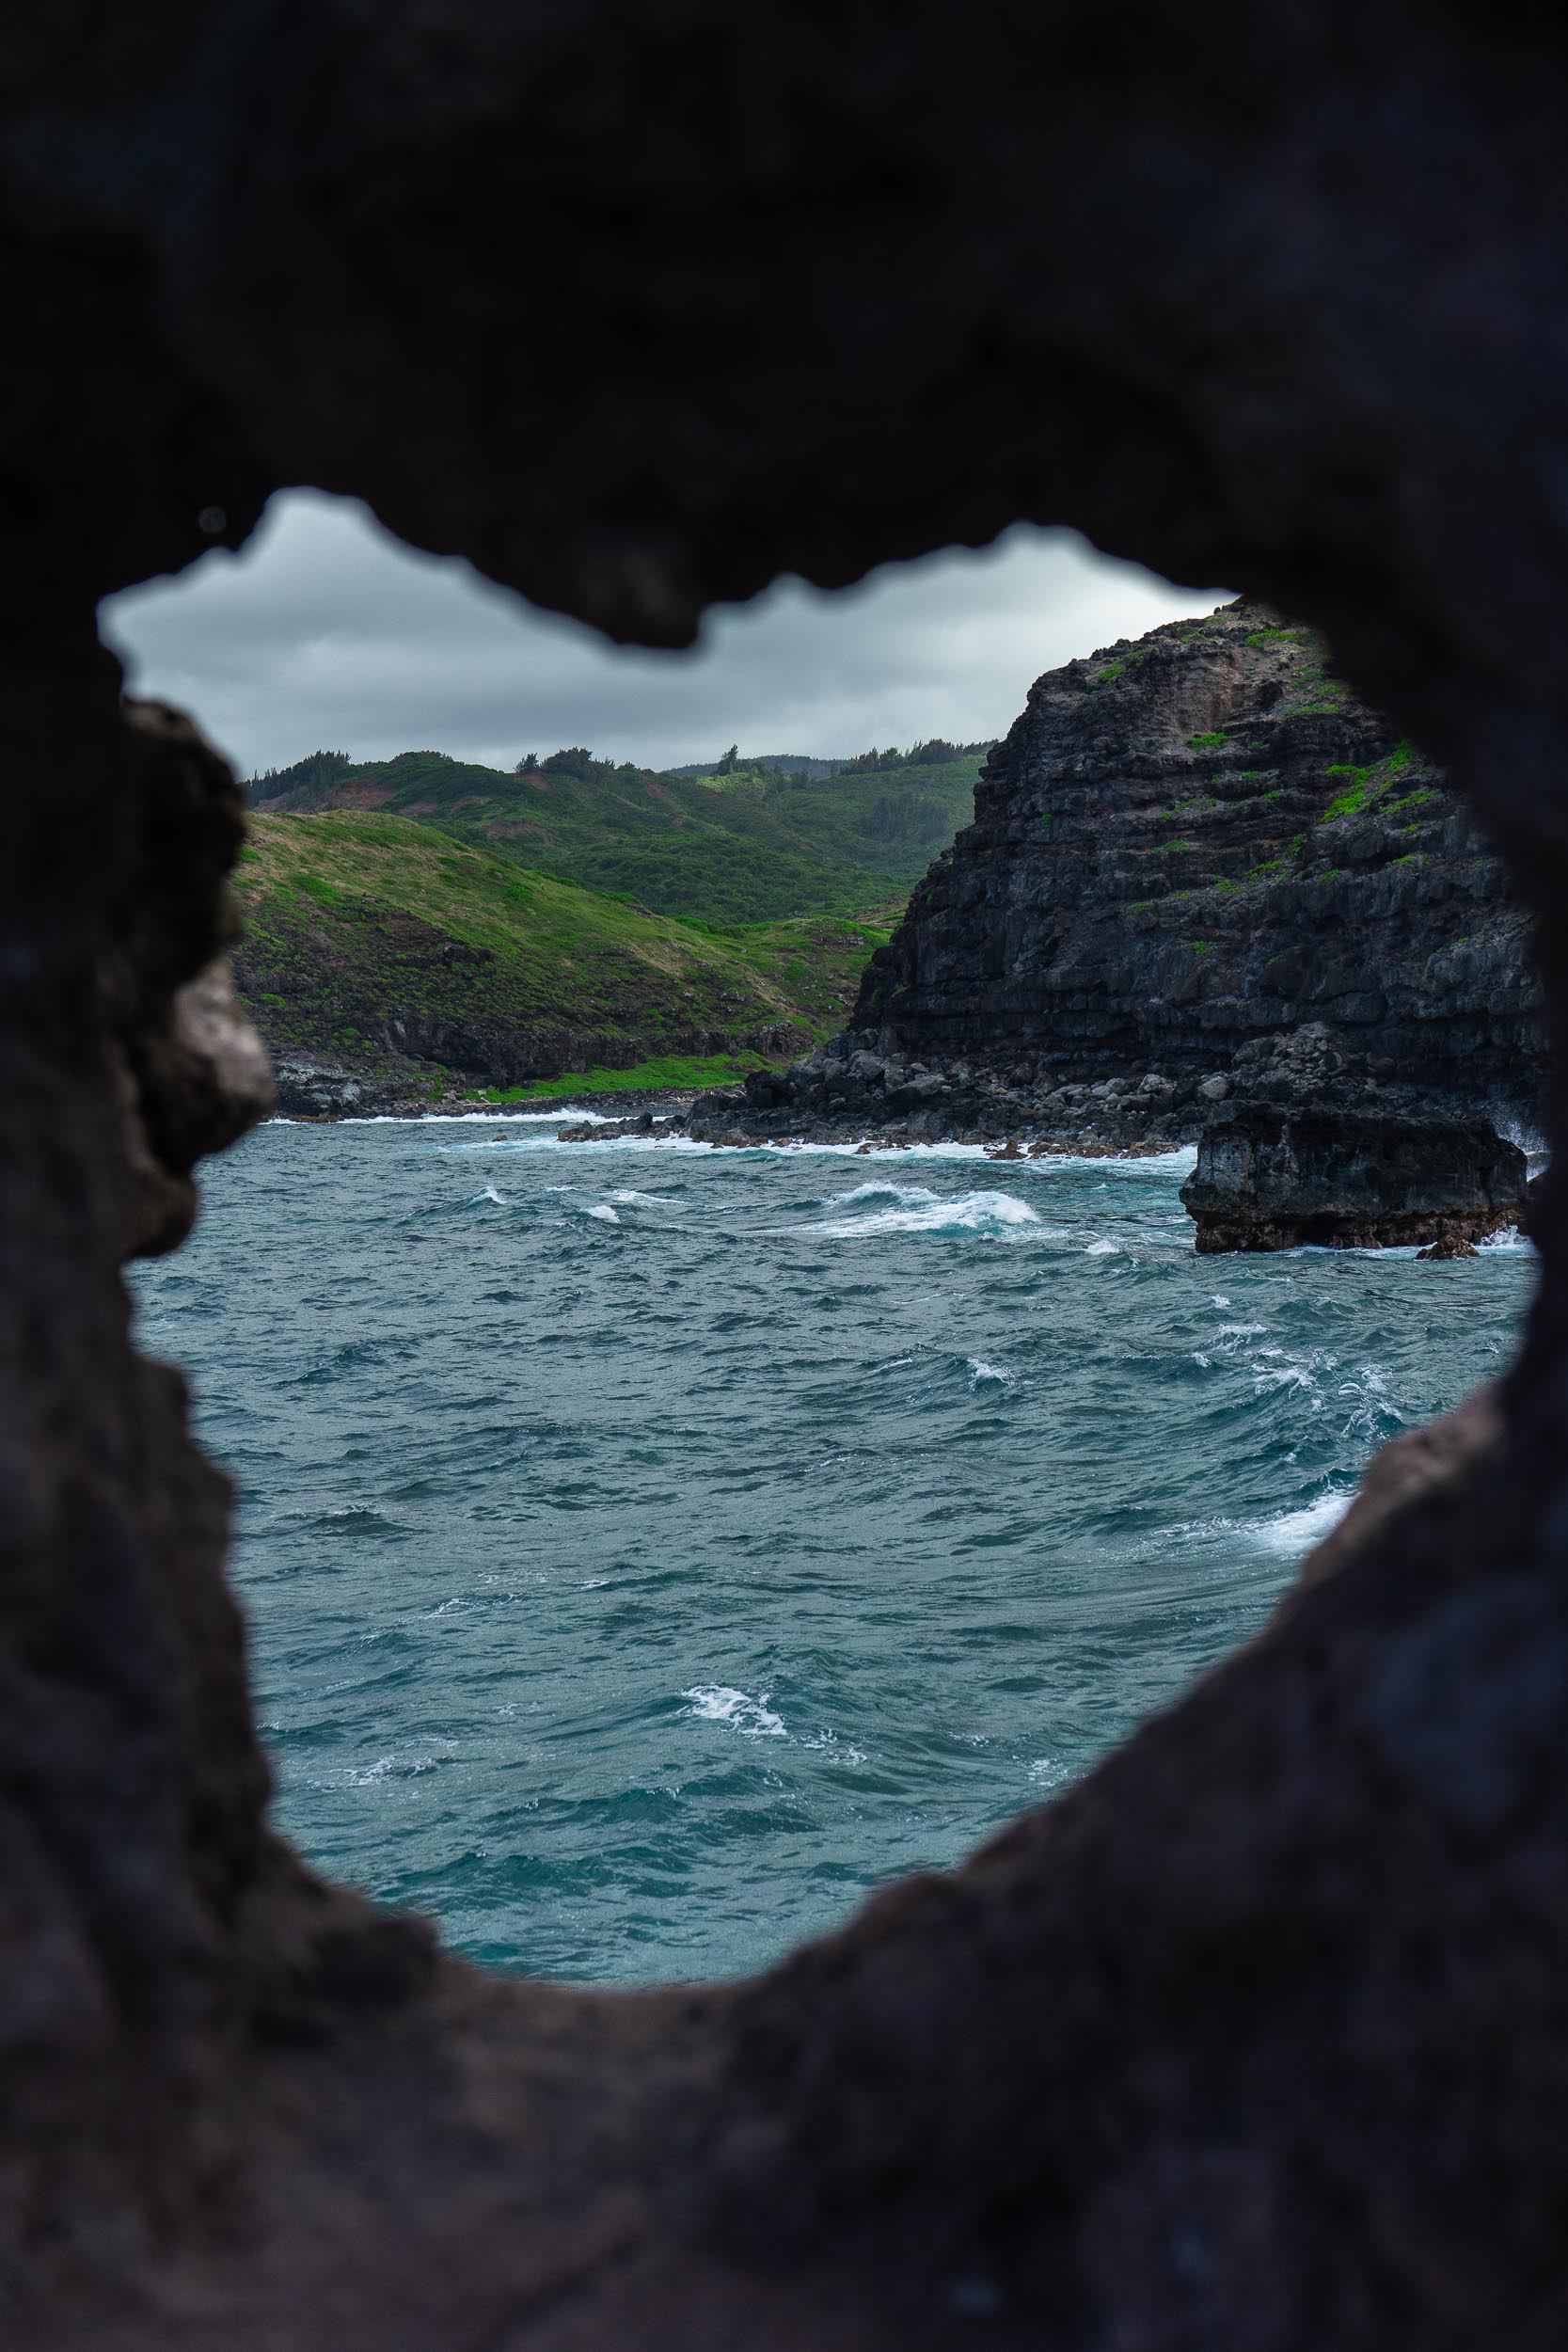 Nakalele Blowhole and Maui's Heart Shaped Rock. Tips, tricks, and things to do in Maui, Hawaii. The ultimate travel guide along with rare, locals only secrets